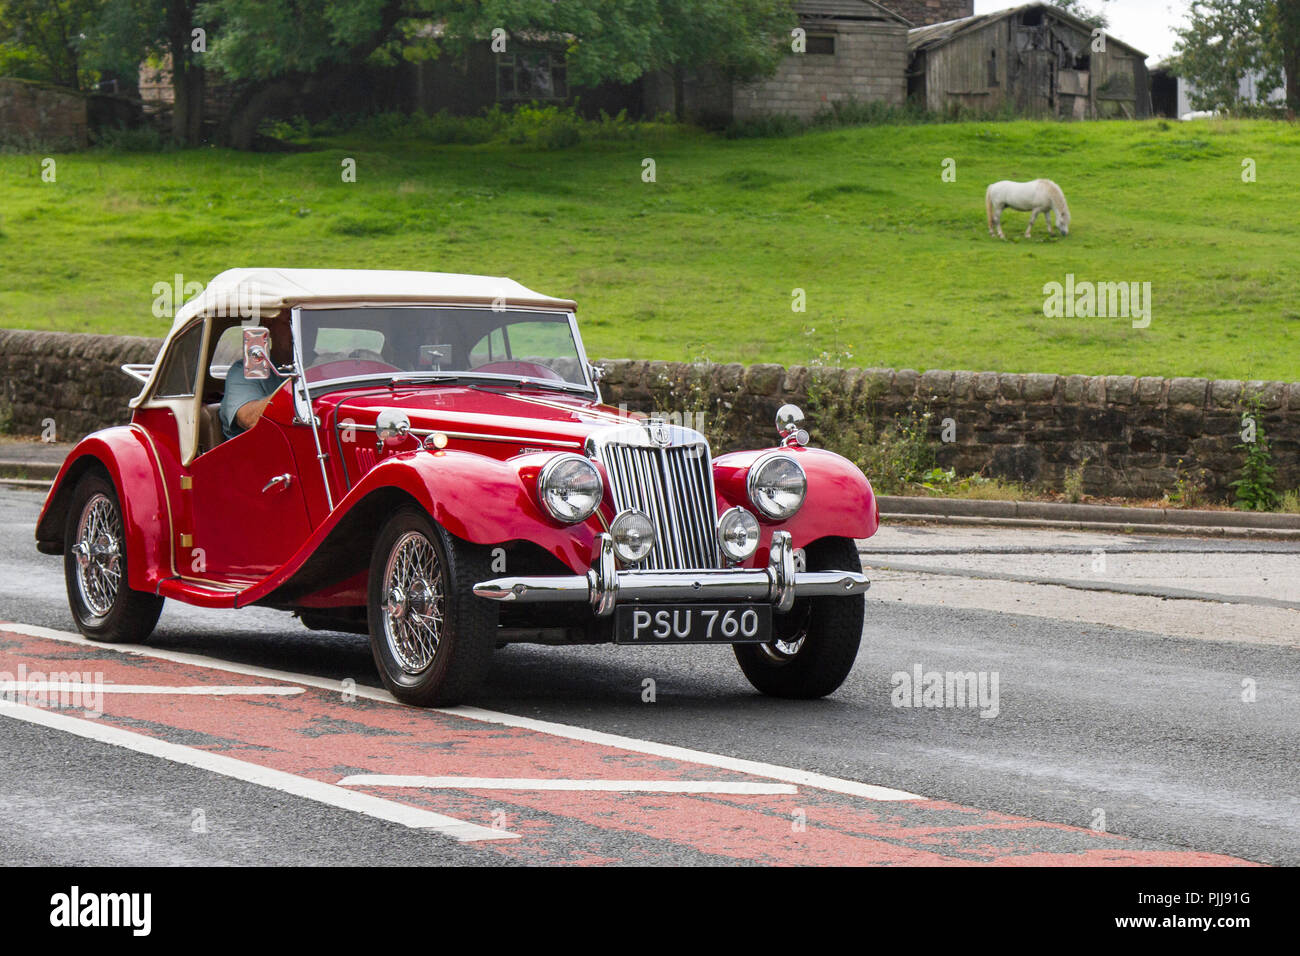 Red PSU 760 MG Classic, vintage, veteran, cars of yesteryear, restored collectibles at Hoghton Tower Class Cars Rally, UK - Stock Image